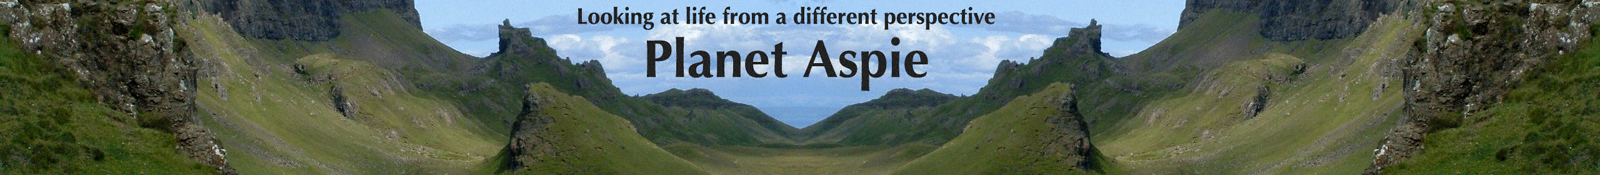 Planet Aspie - looking at life from a different perspective